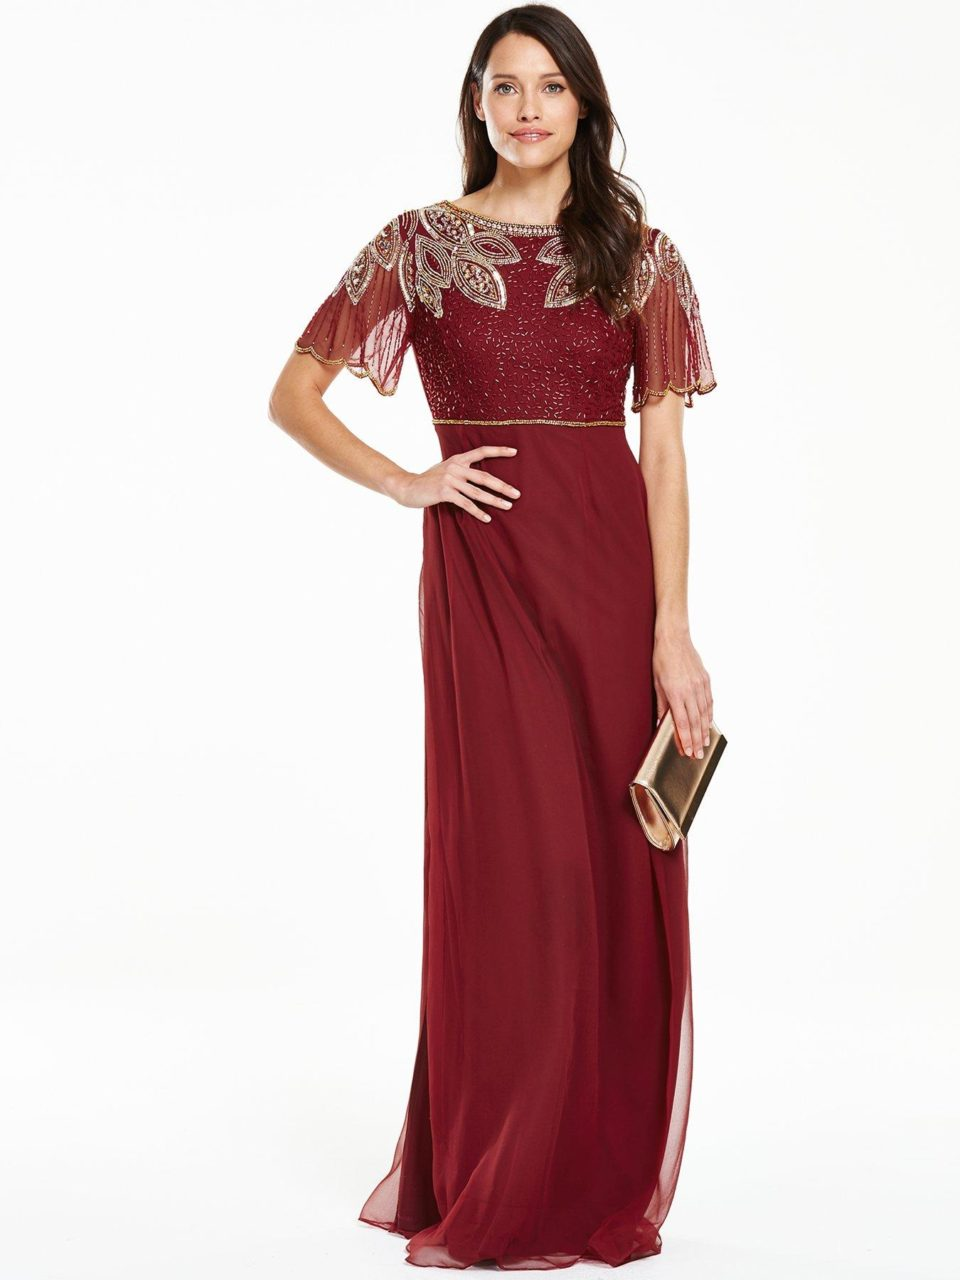 12 stunning sparkly bridesmaid dresses for a winter wedding v by very merlot embellished maxi dress vintage ombrellifo Choice Image